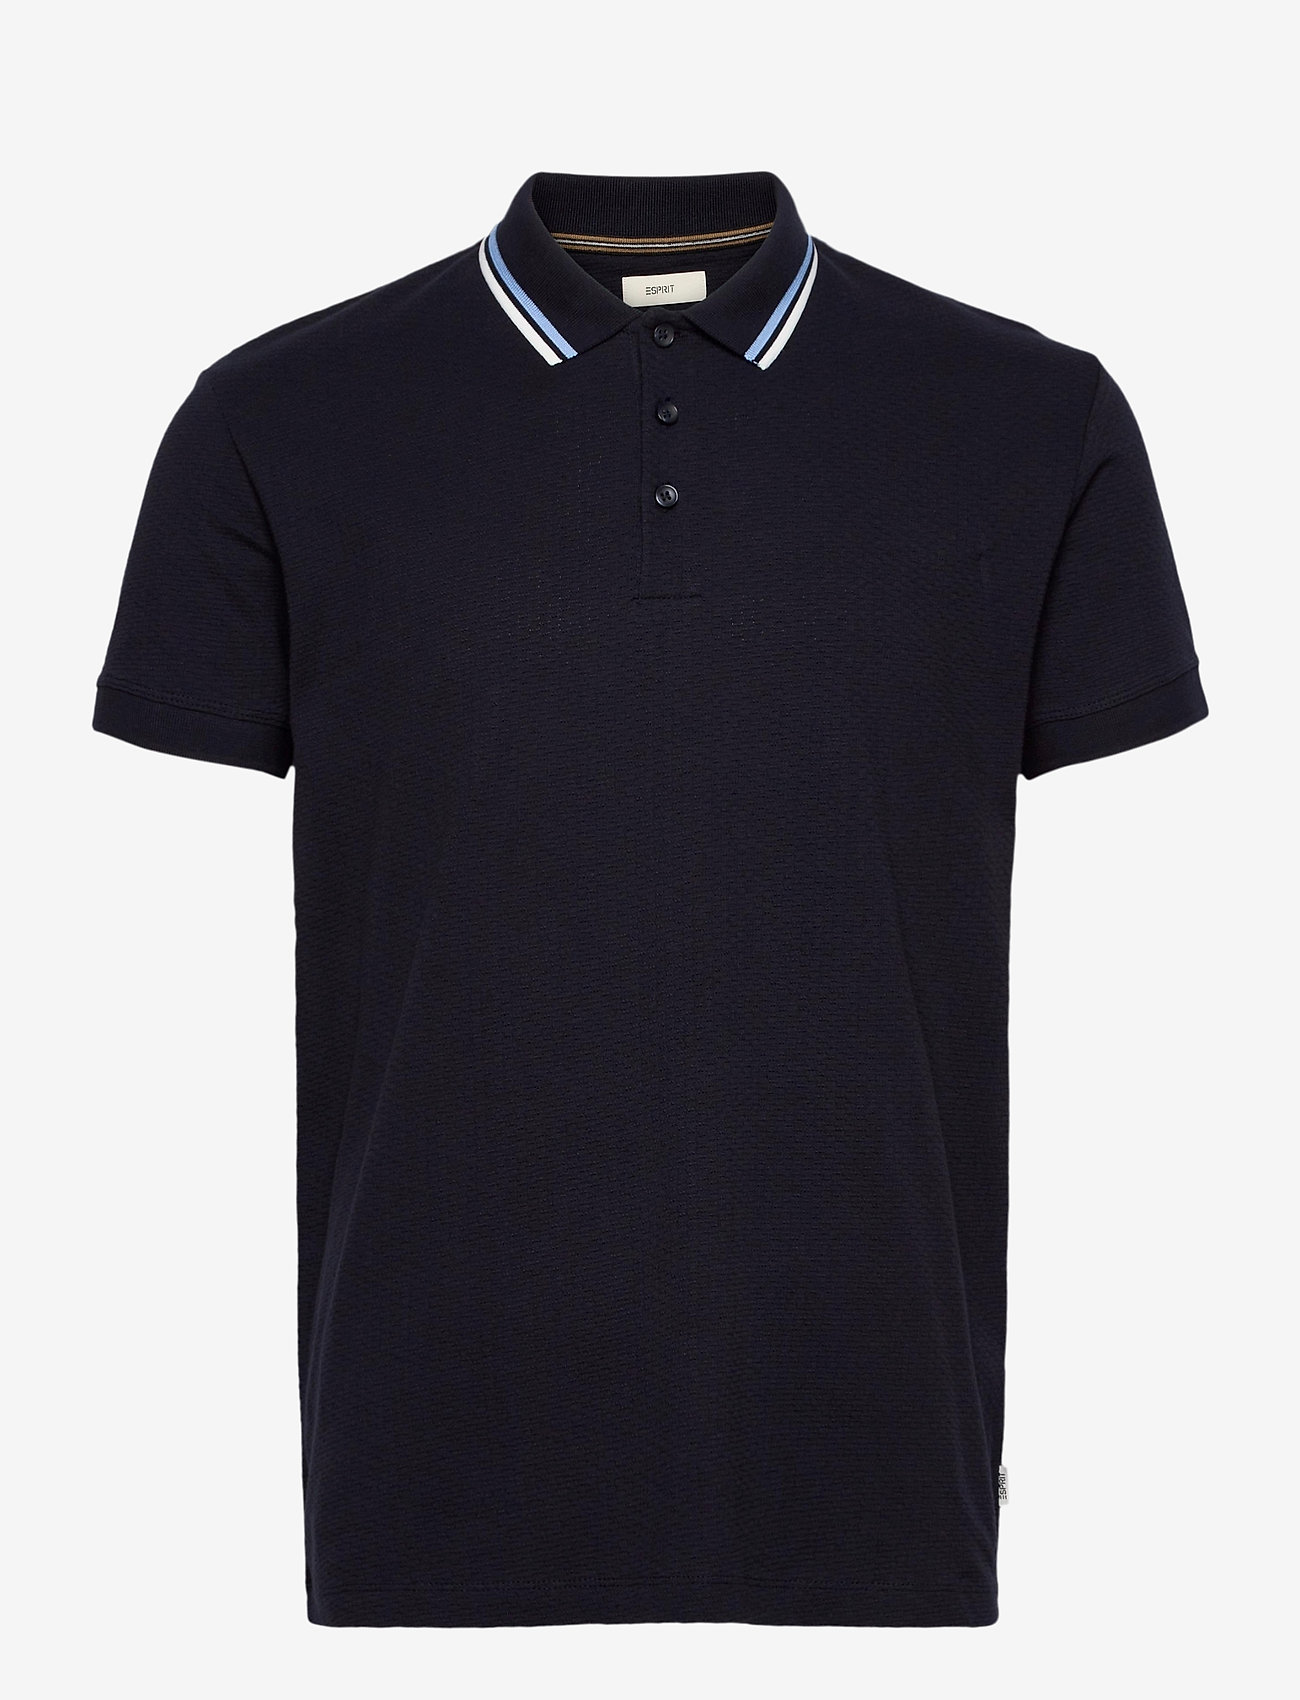 Esprit Casual - Polo shirts - basic t-shirts - navy - 0